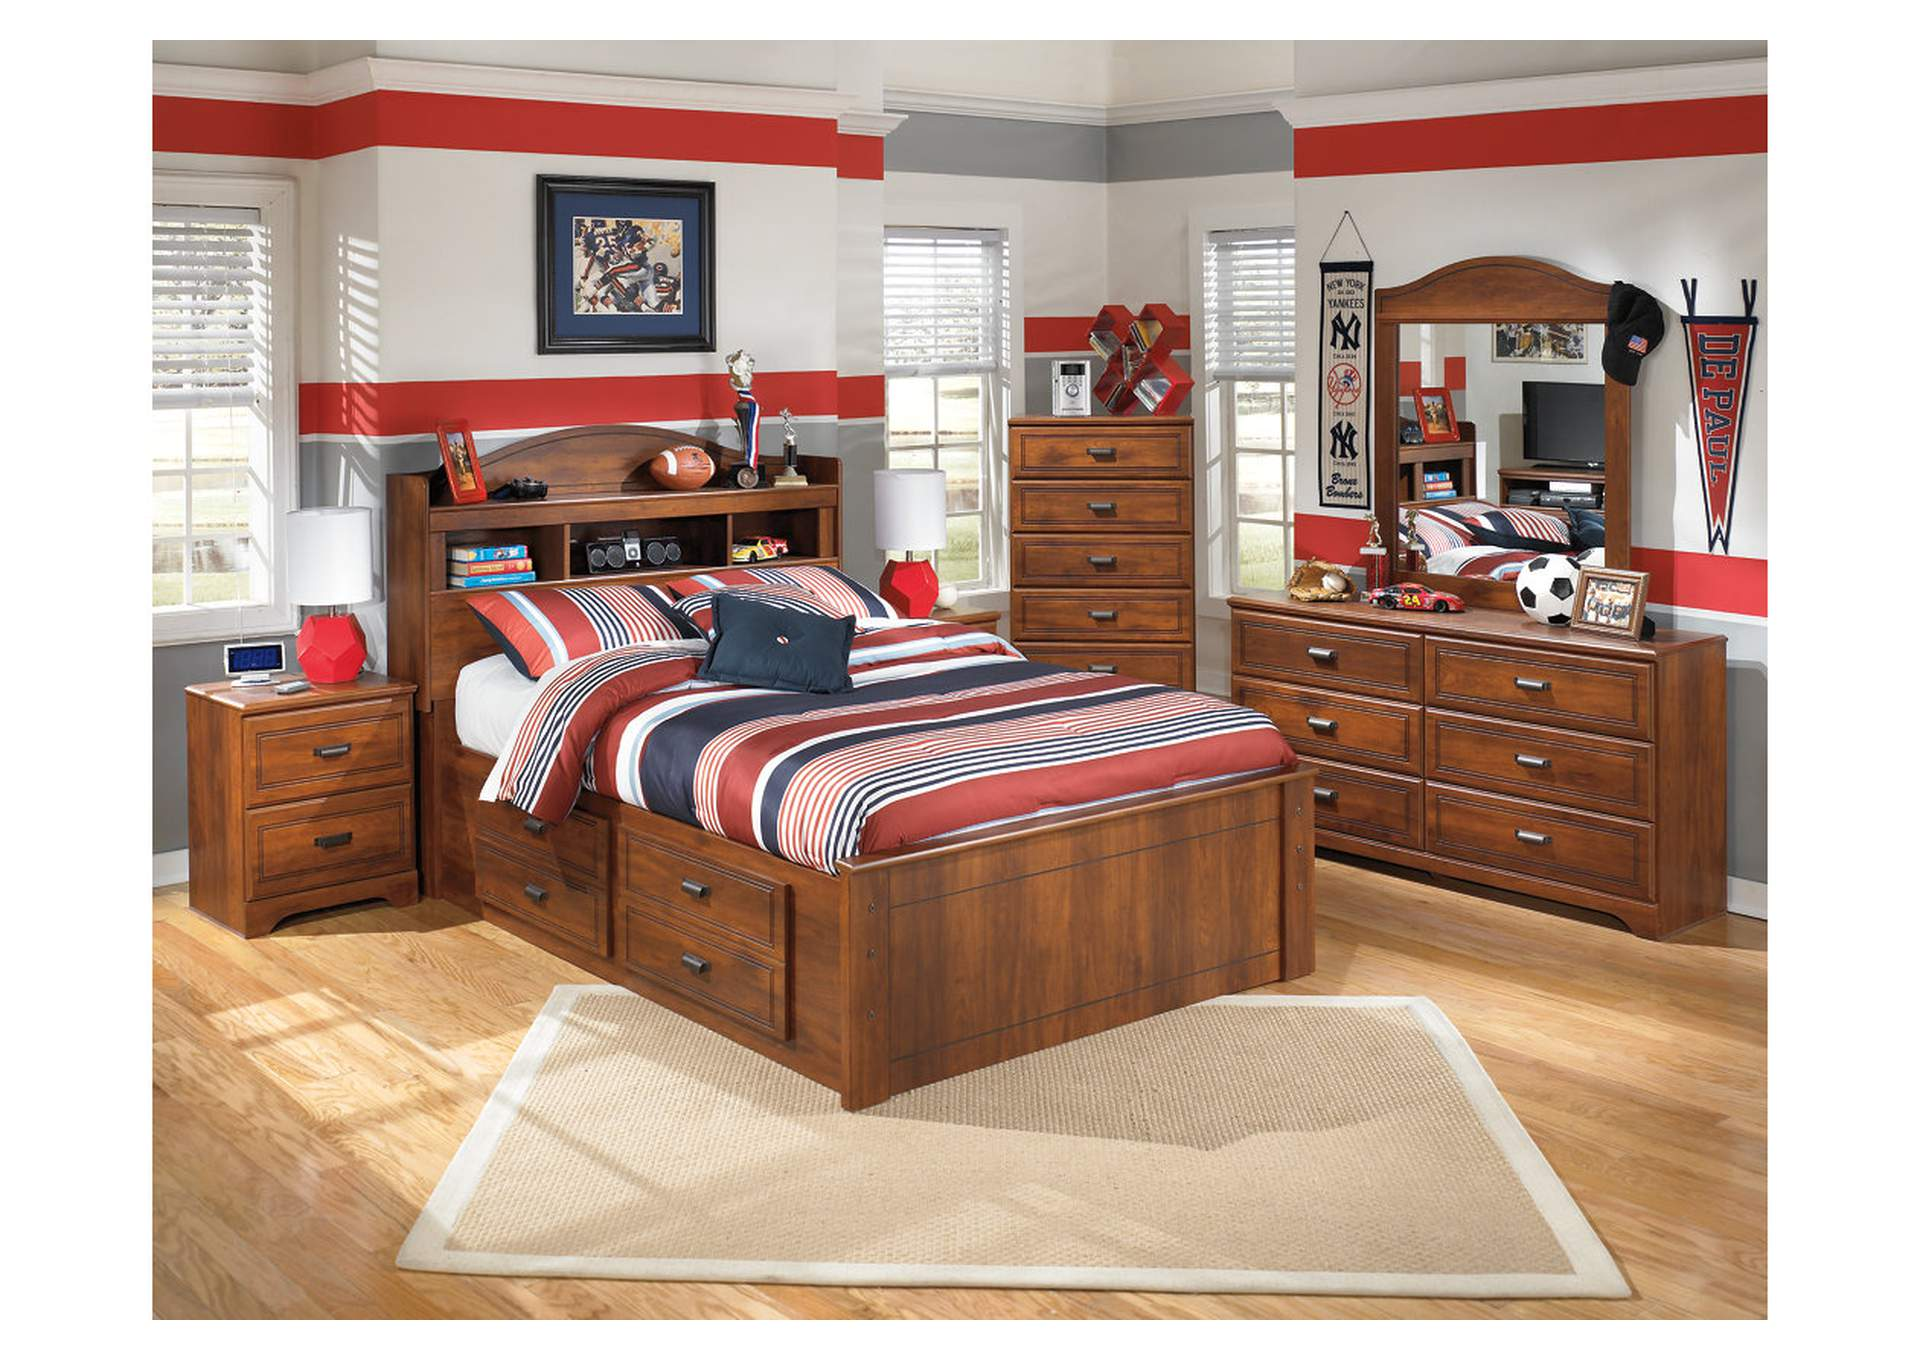 Barchan Full Bookcase Bed w/ Storage, Dresser & Mirror,Signature Design By Ashley